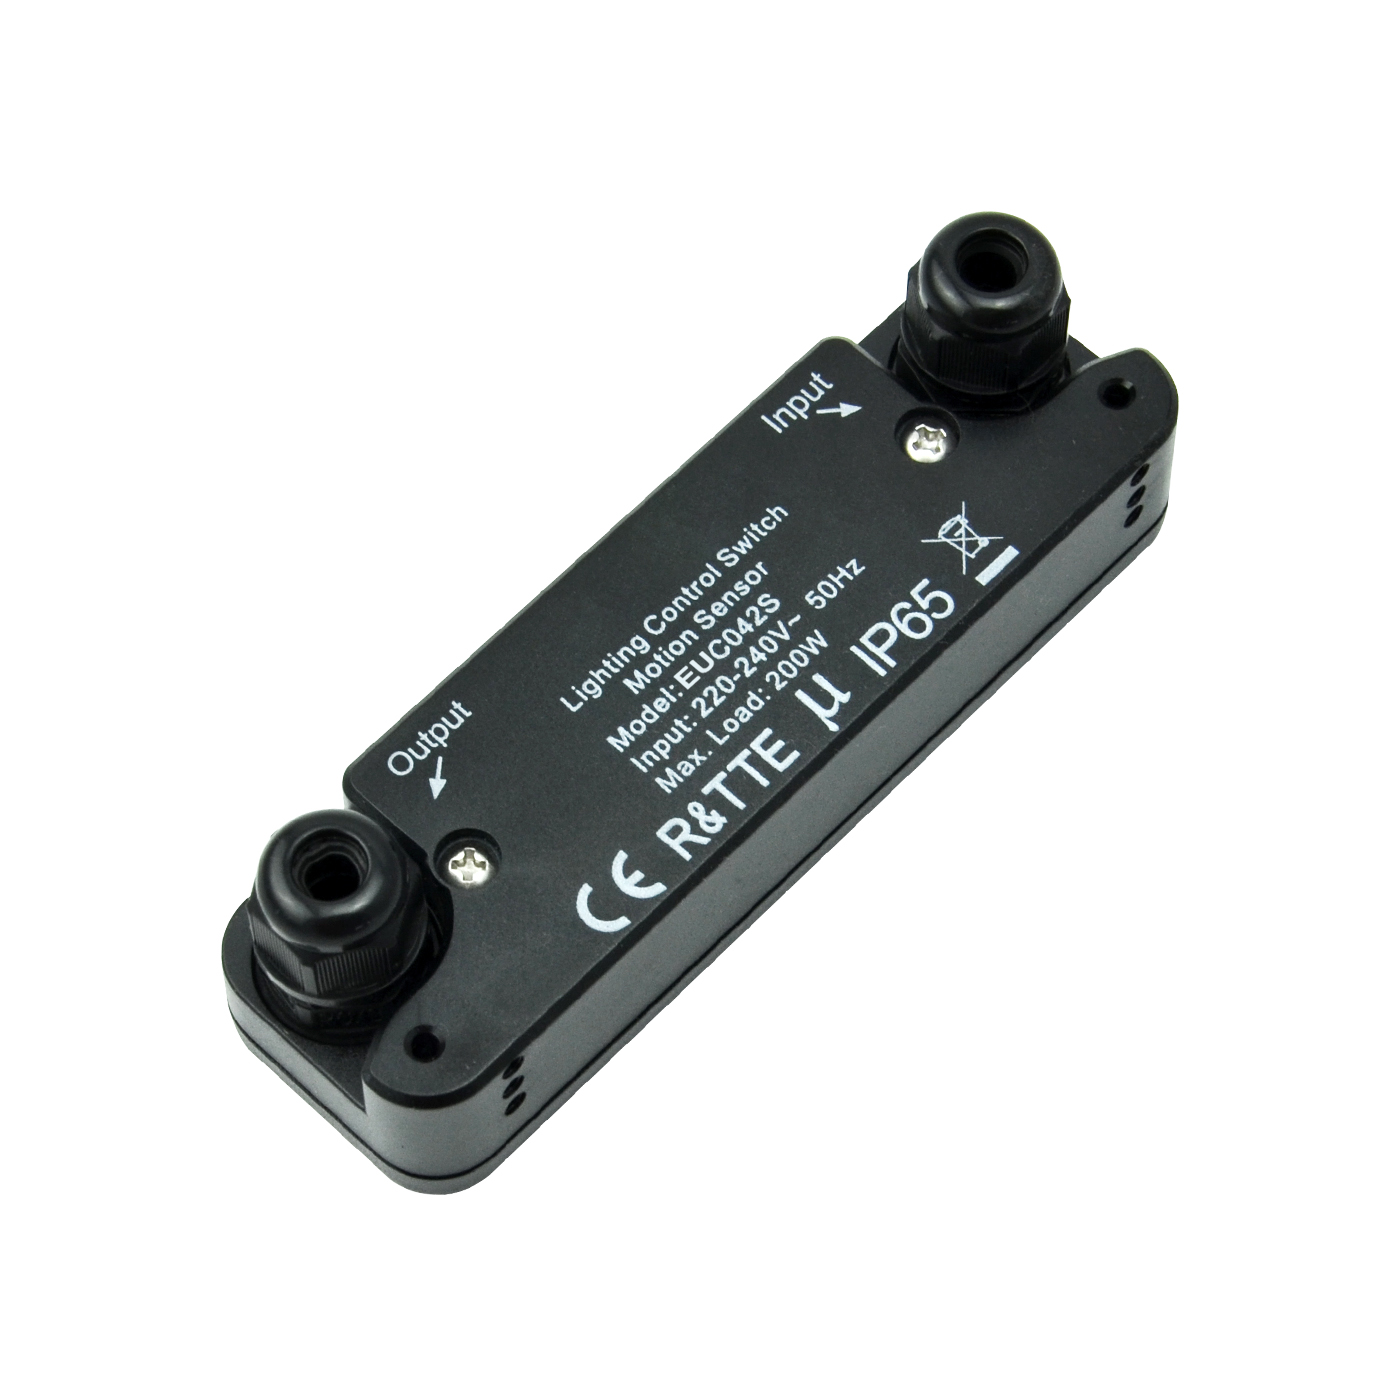 [out of stock]220-240VAC IP65 ON/OFF Control Sensor  For Flood Light